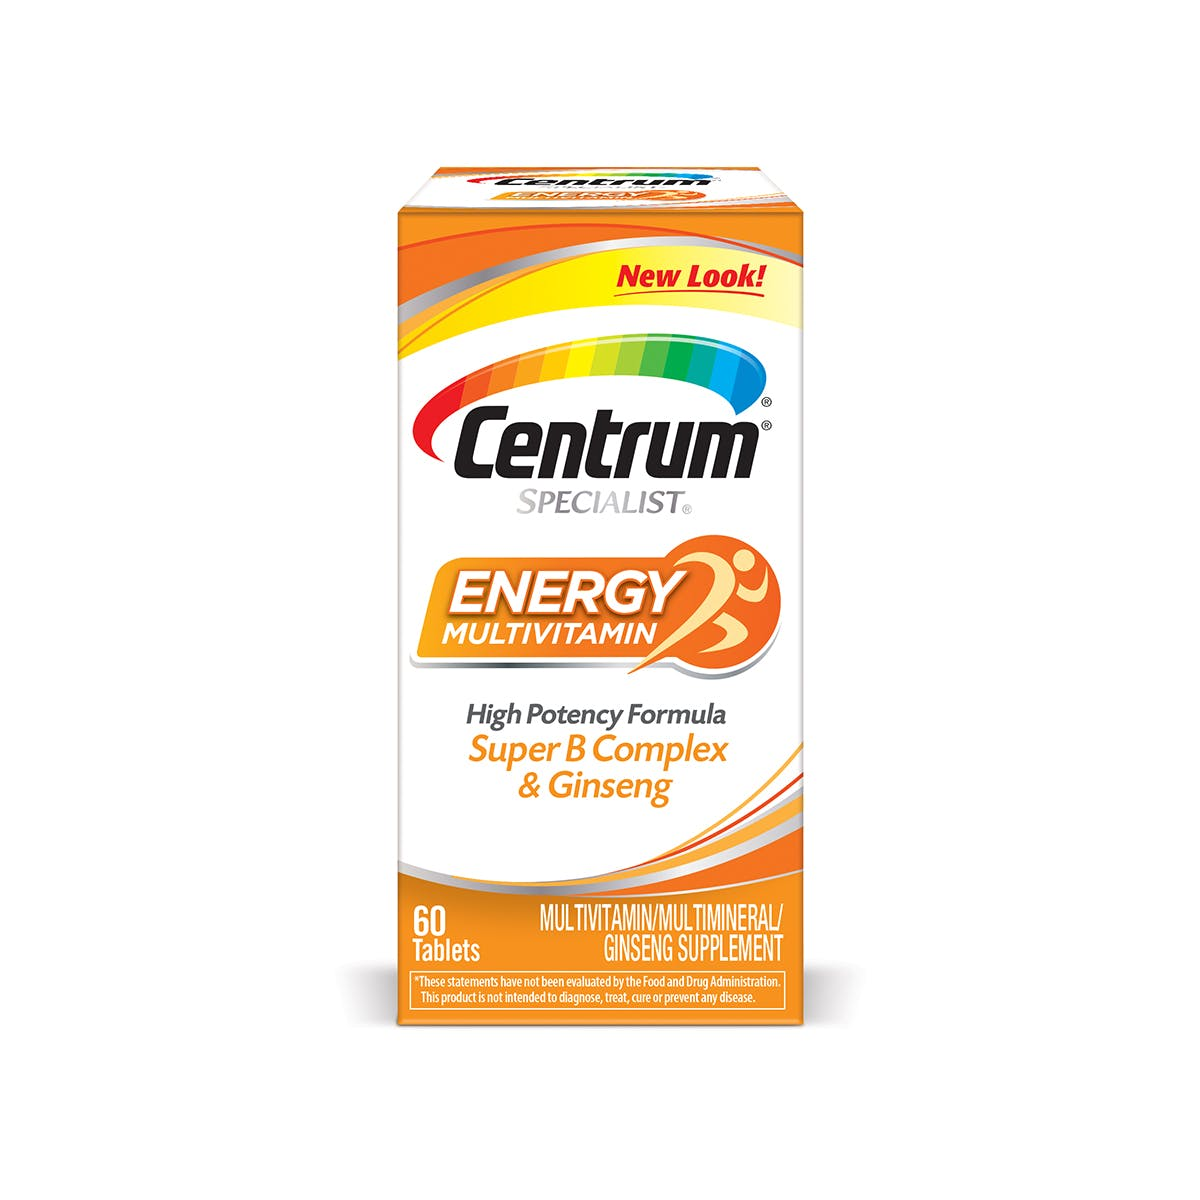 Box of Centrum Specialist Energy multivitamin